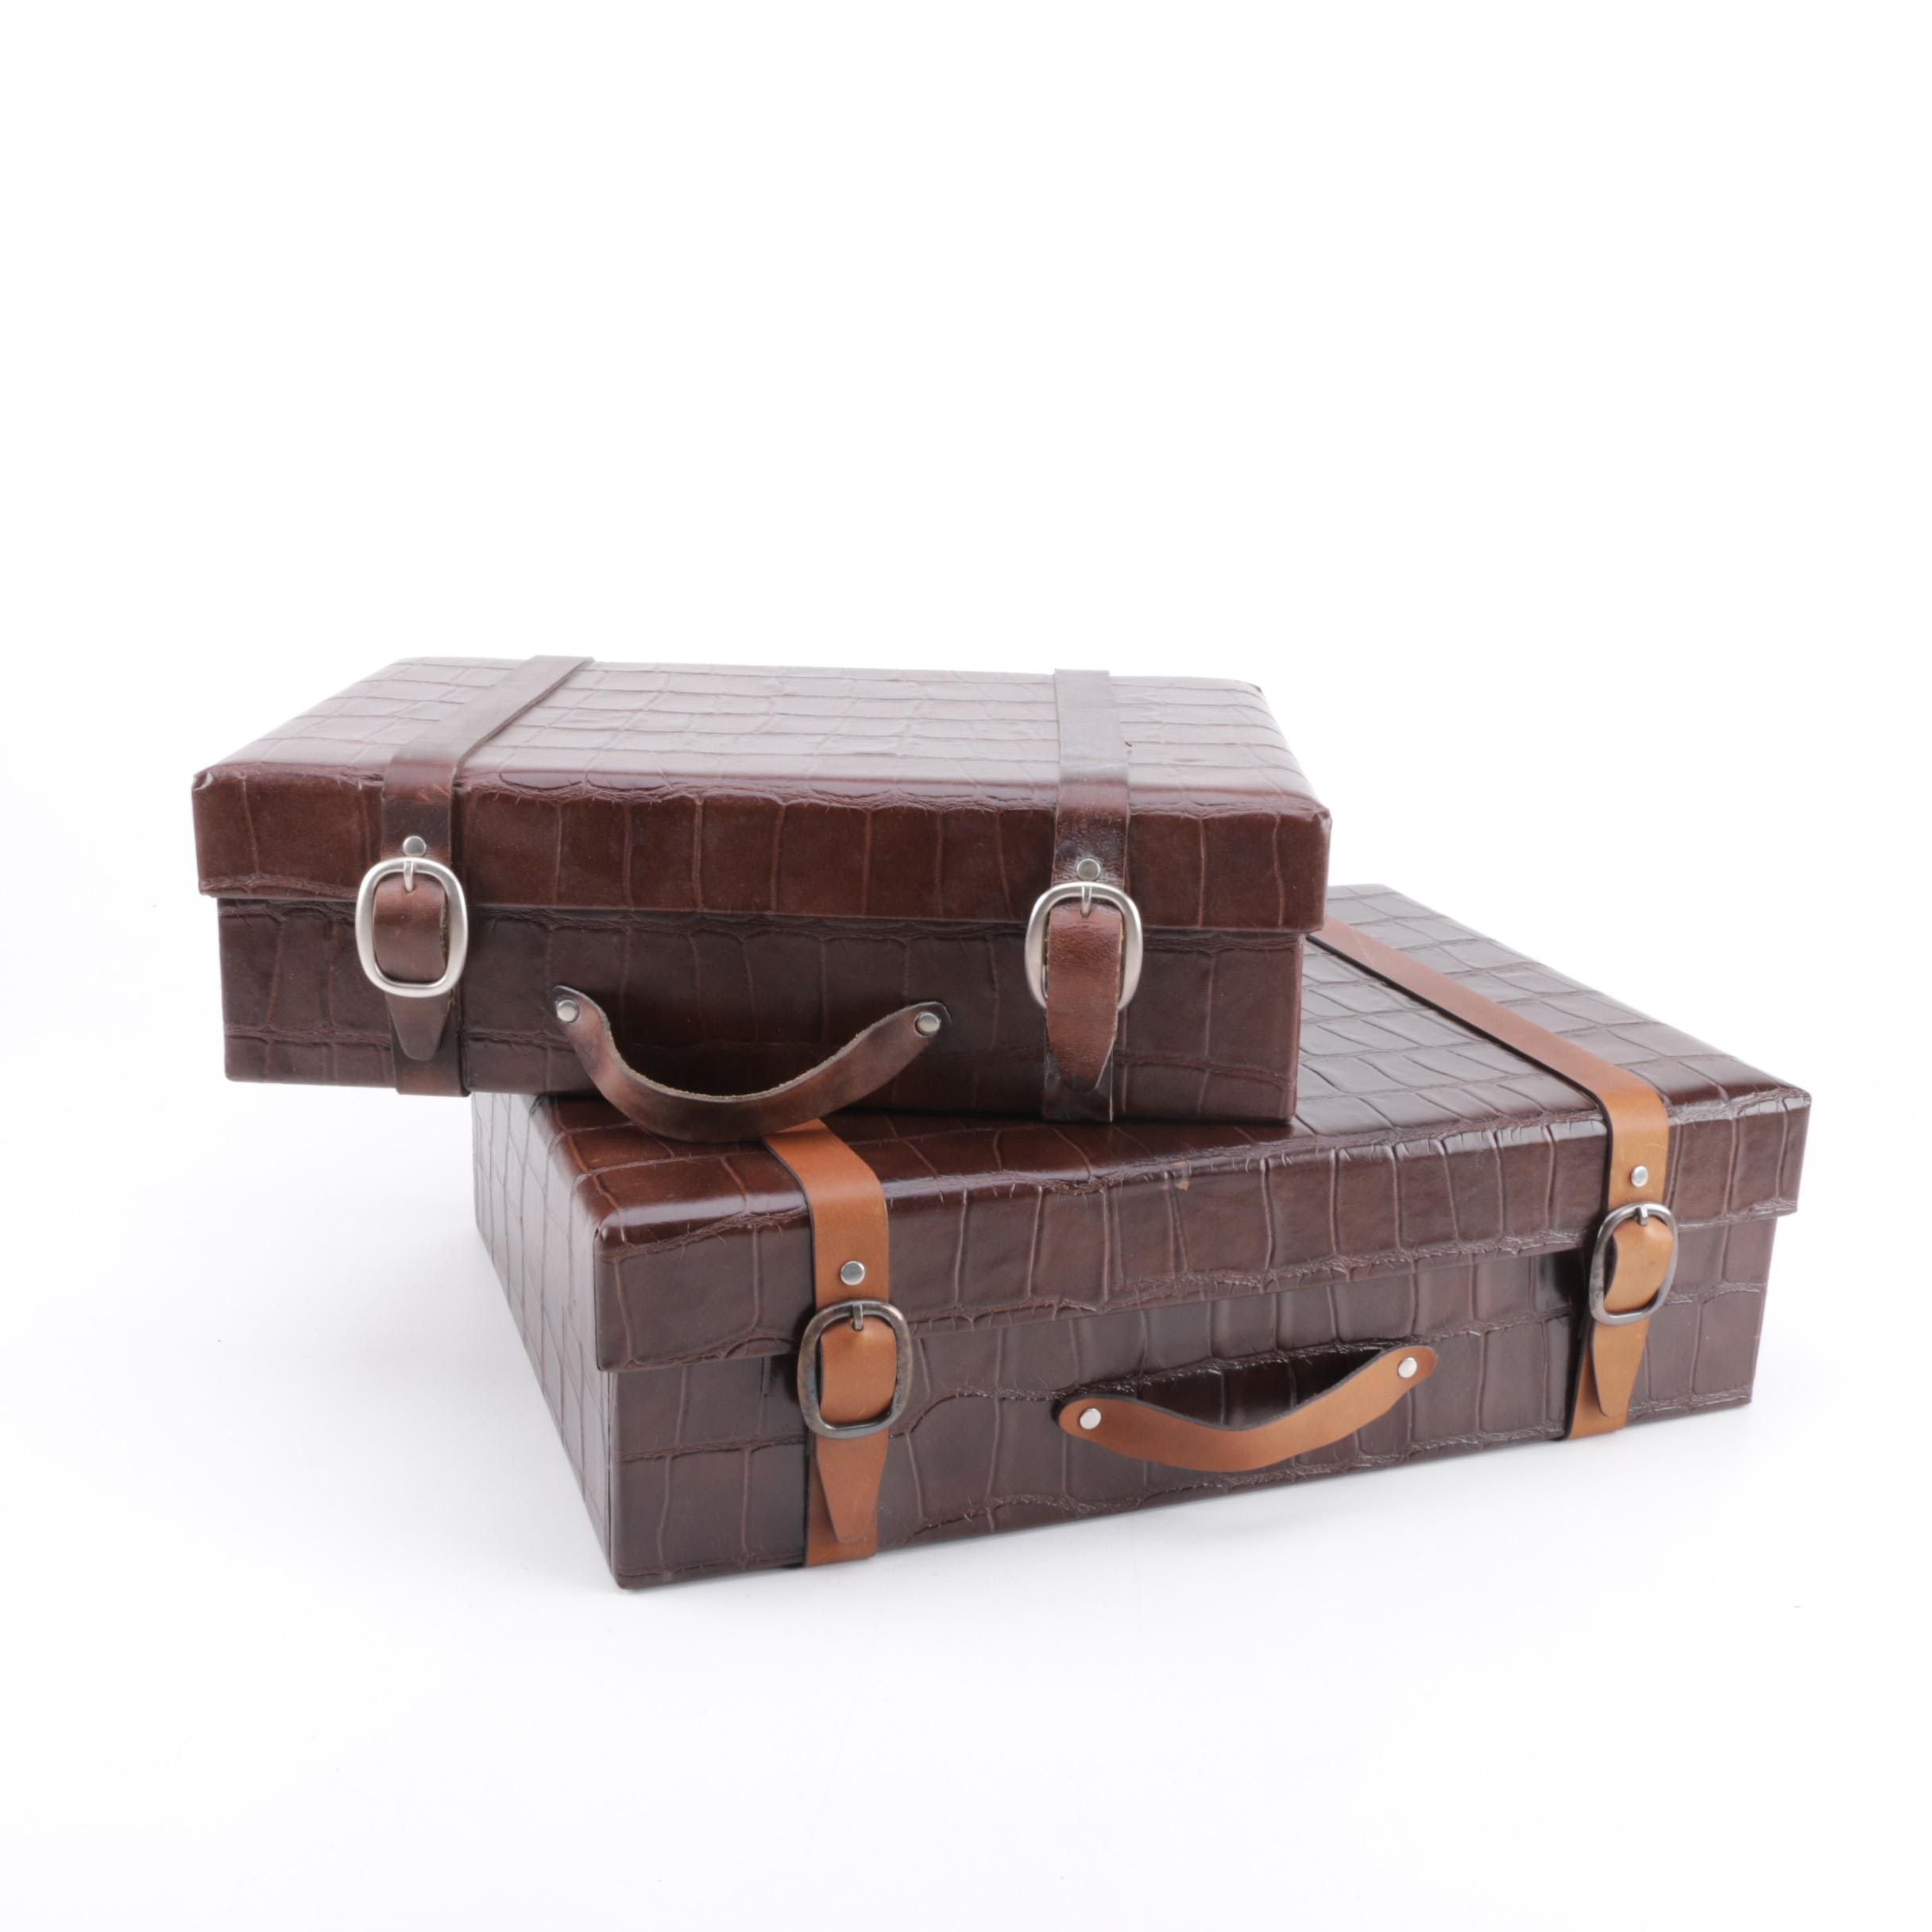 Two Faux Leather Storage Boxes ...  sc 1 st  EBTH.com & Two Faux Leather Storage Boxes : EBTH